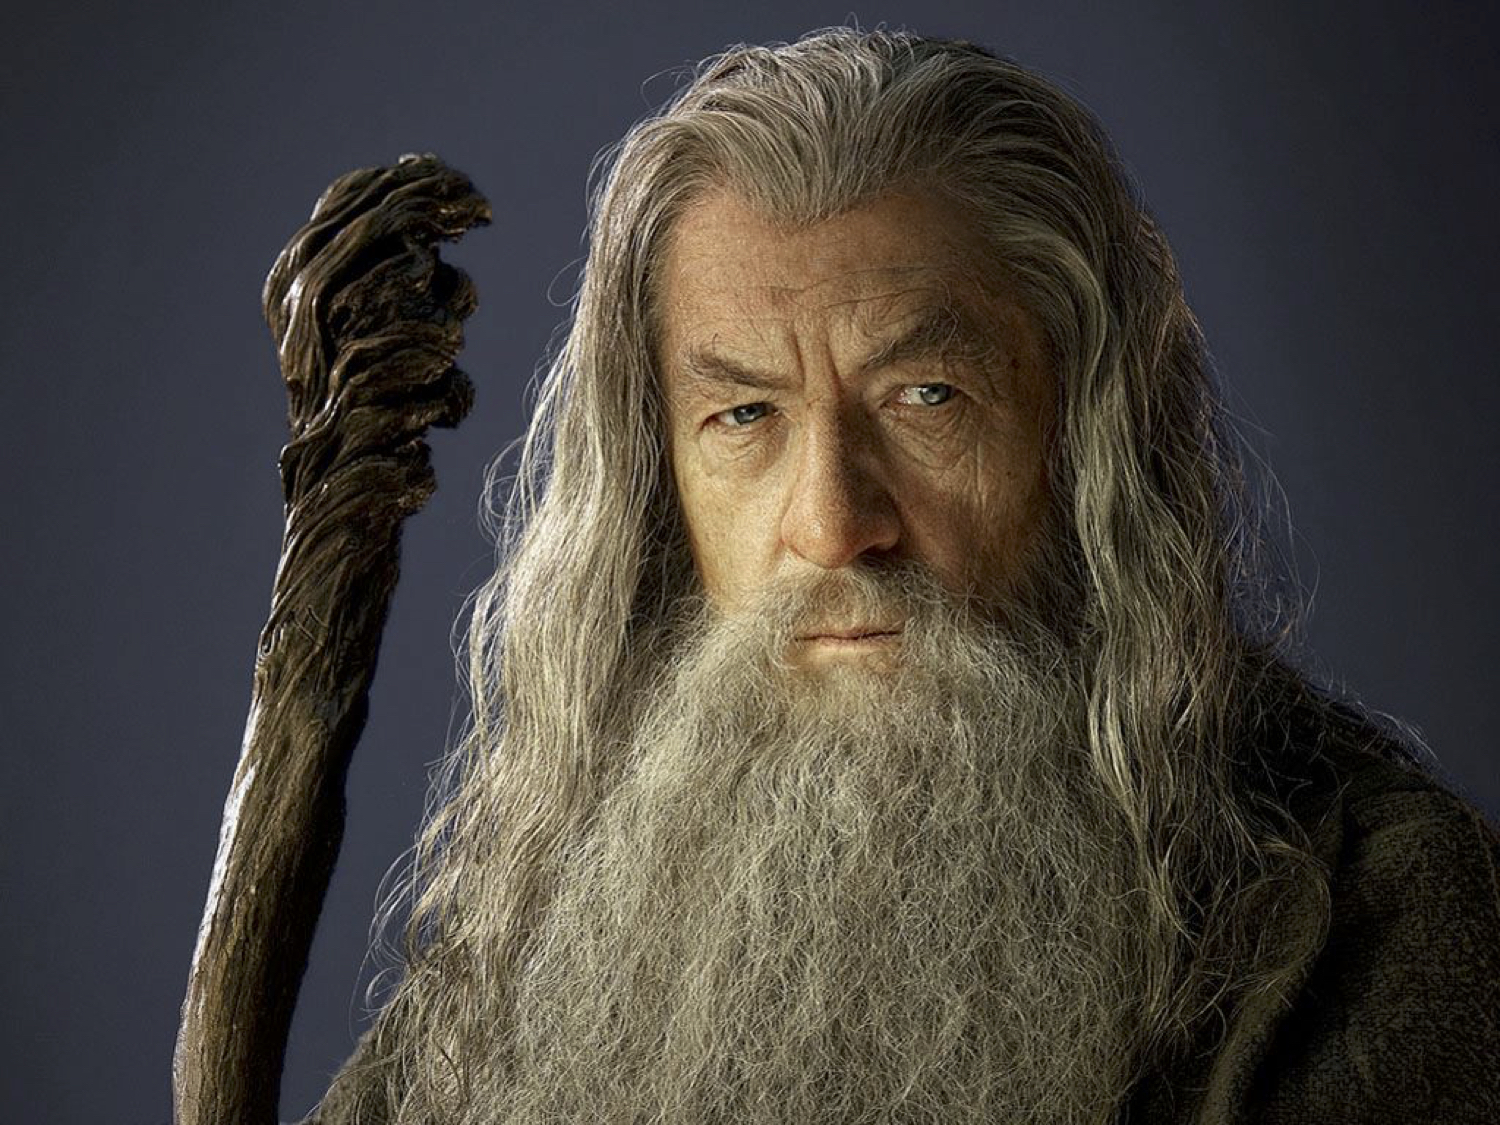 Gandalf, wise wizard. You can tell because of his beard. And staff.